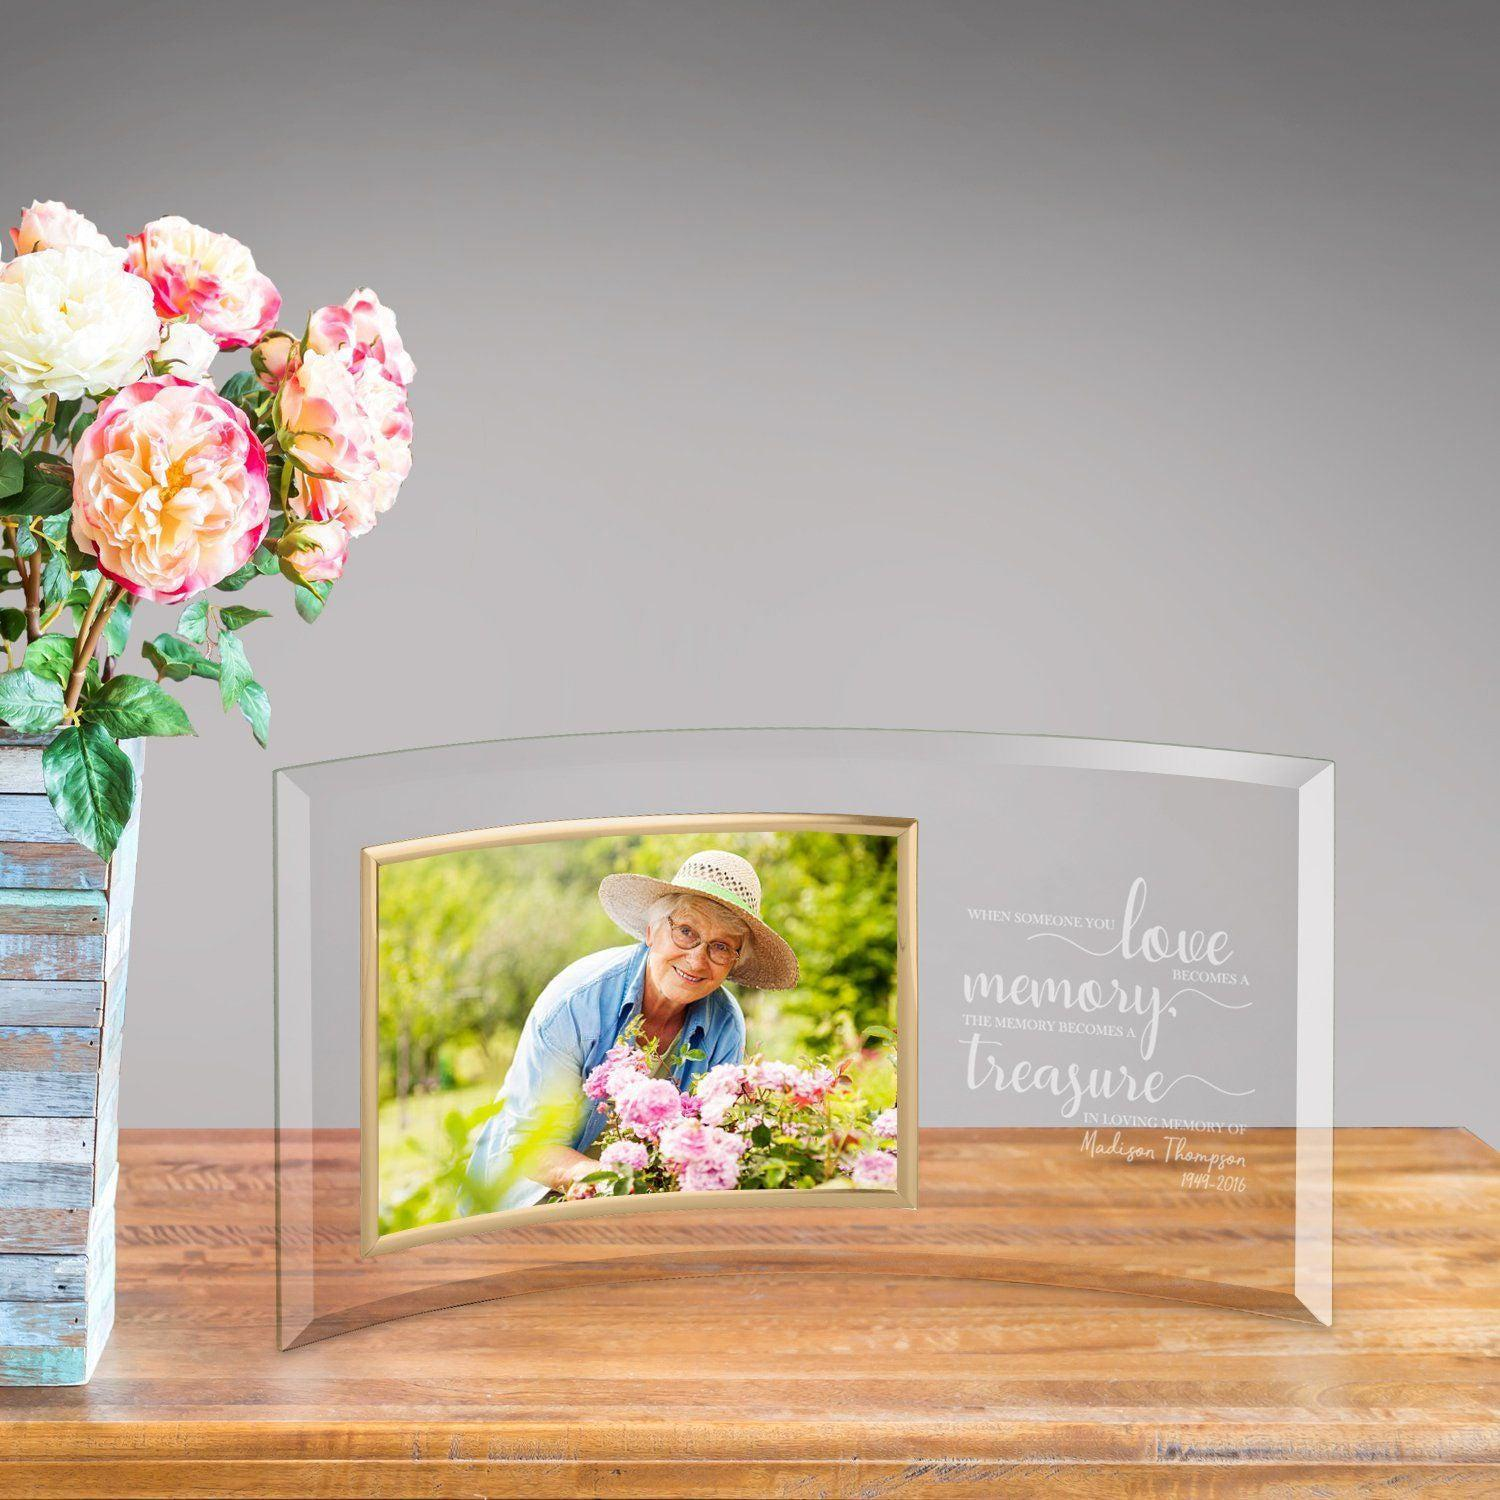 Personalized Memorial Gifts - Unique Engraved Sympathy Gifts